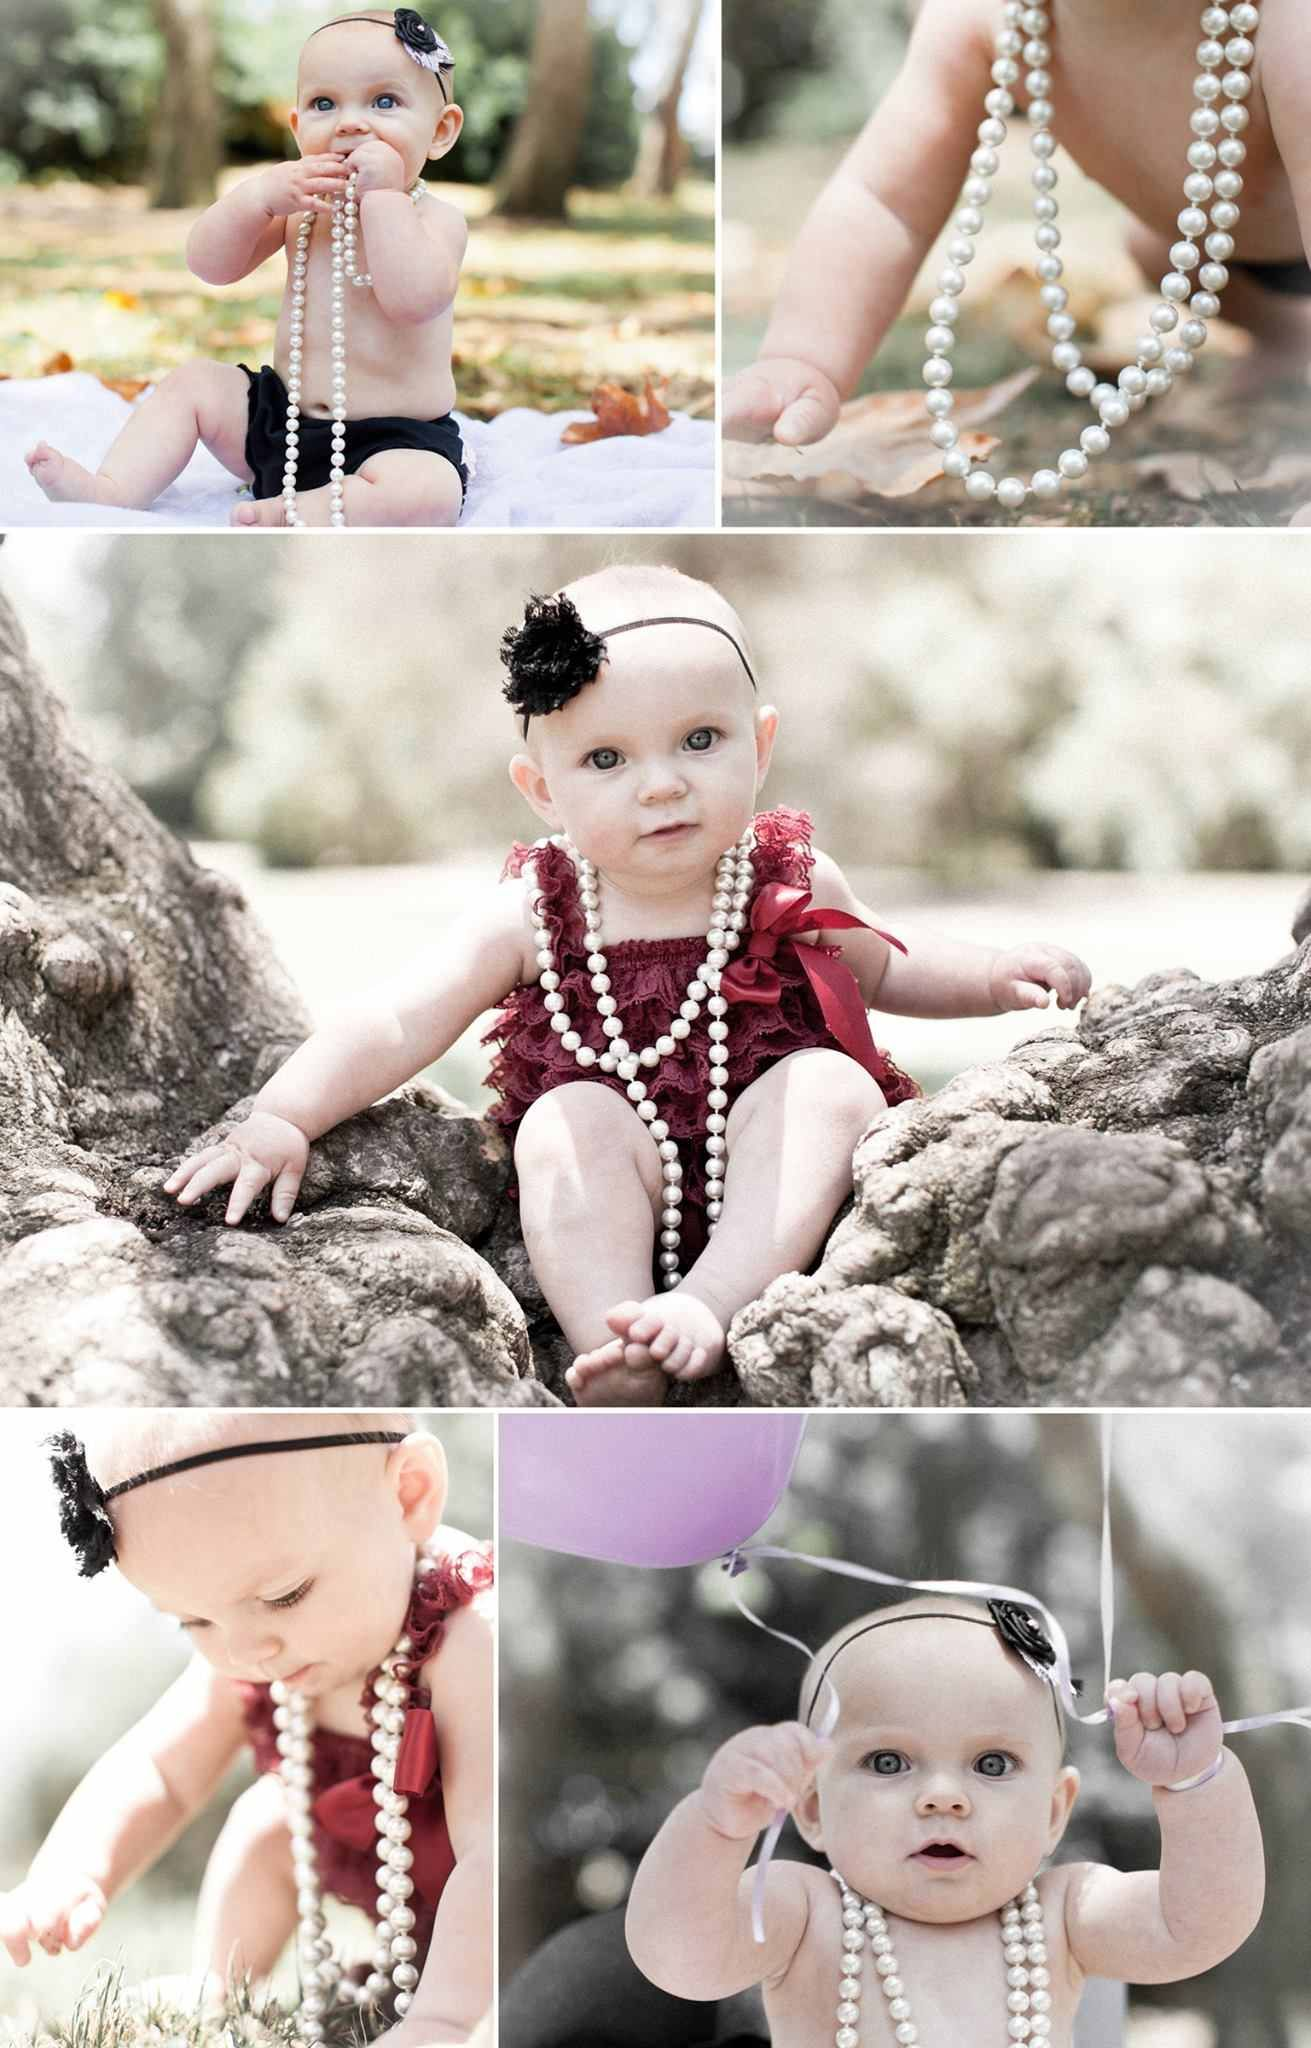 My daughter's 1st birthday photo shoot Photography done by